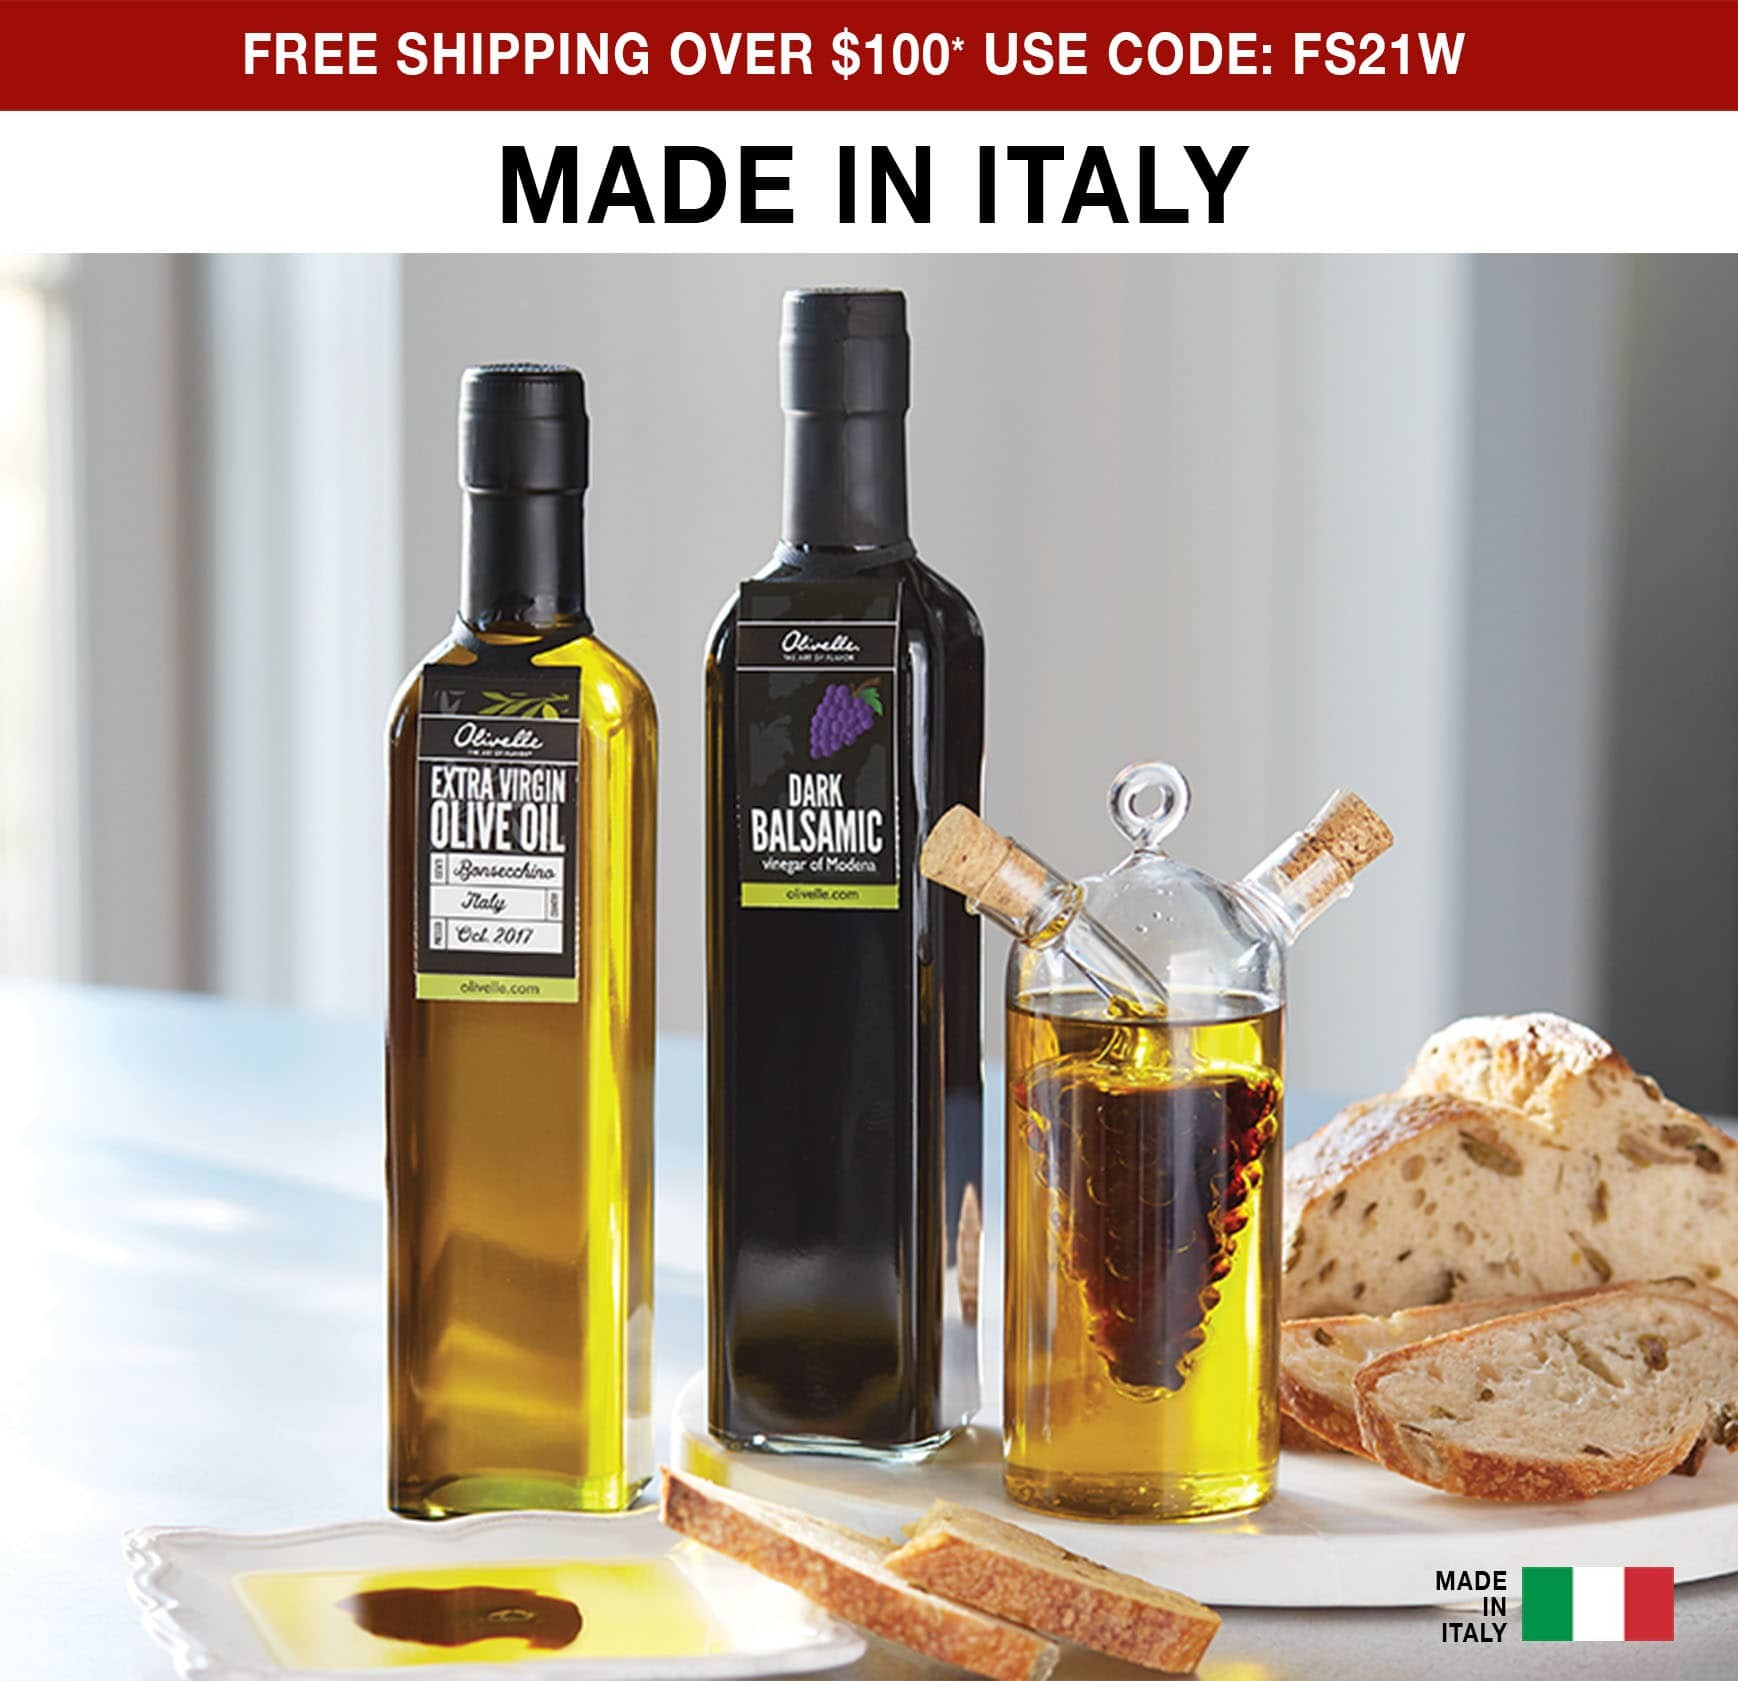 Made in Italy - Free Shipping Over $100 Use Code FS21W.